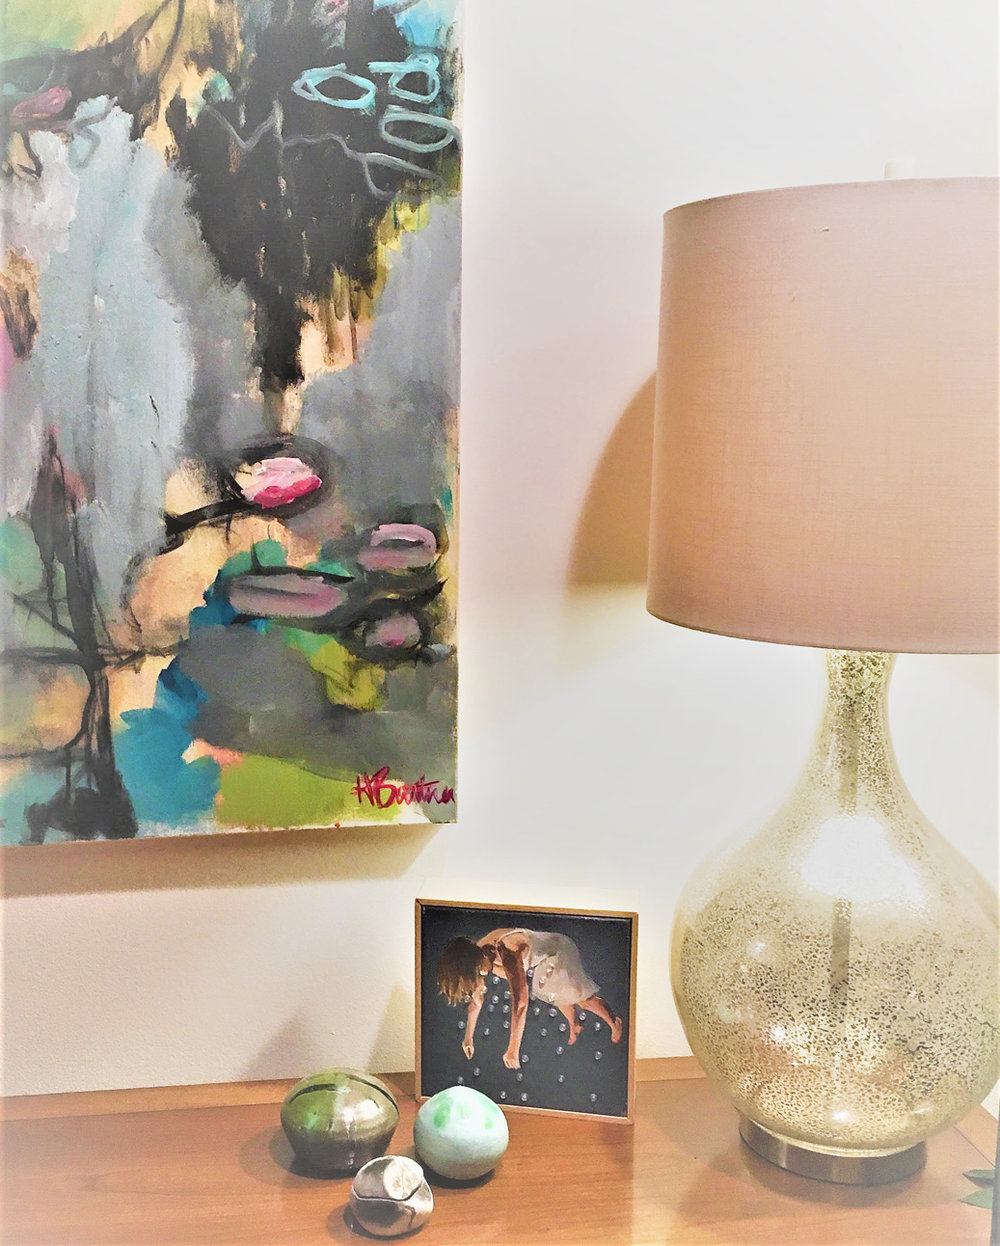 1oil-painting-Float-Mays-Mayhew-collector-Heidi-home.jpg